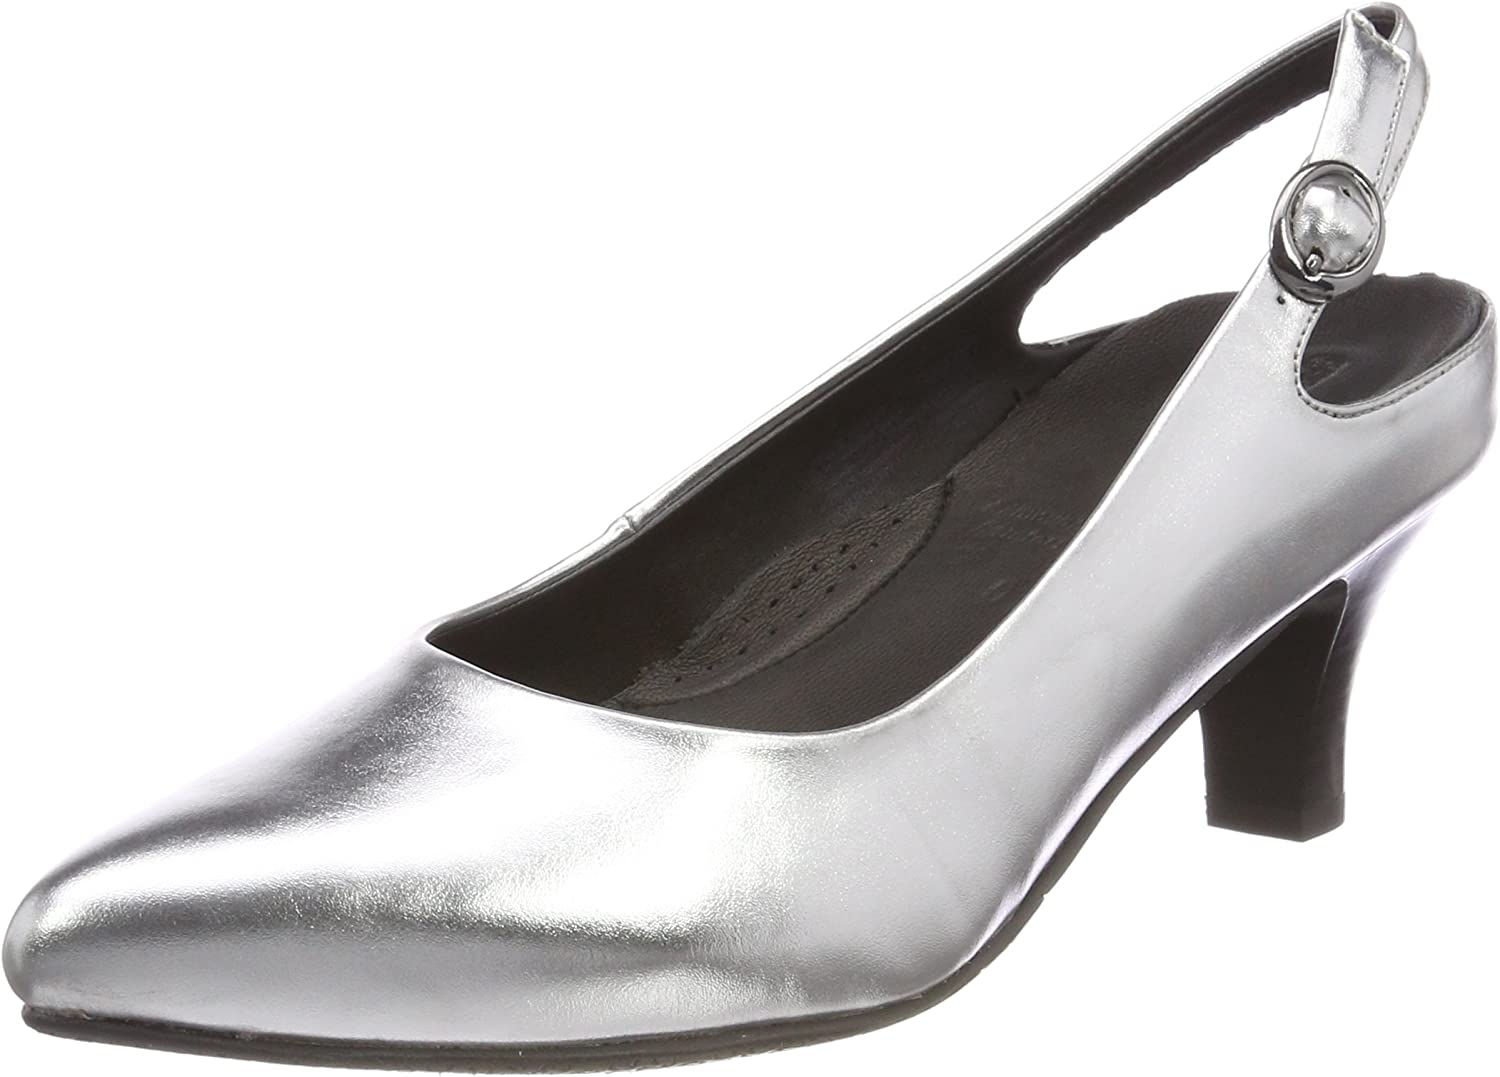 Gerry Weber Women Pumps Silver, (silver) G2110249 750